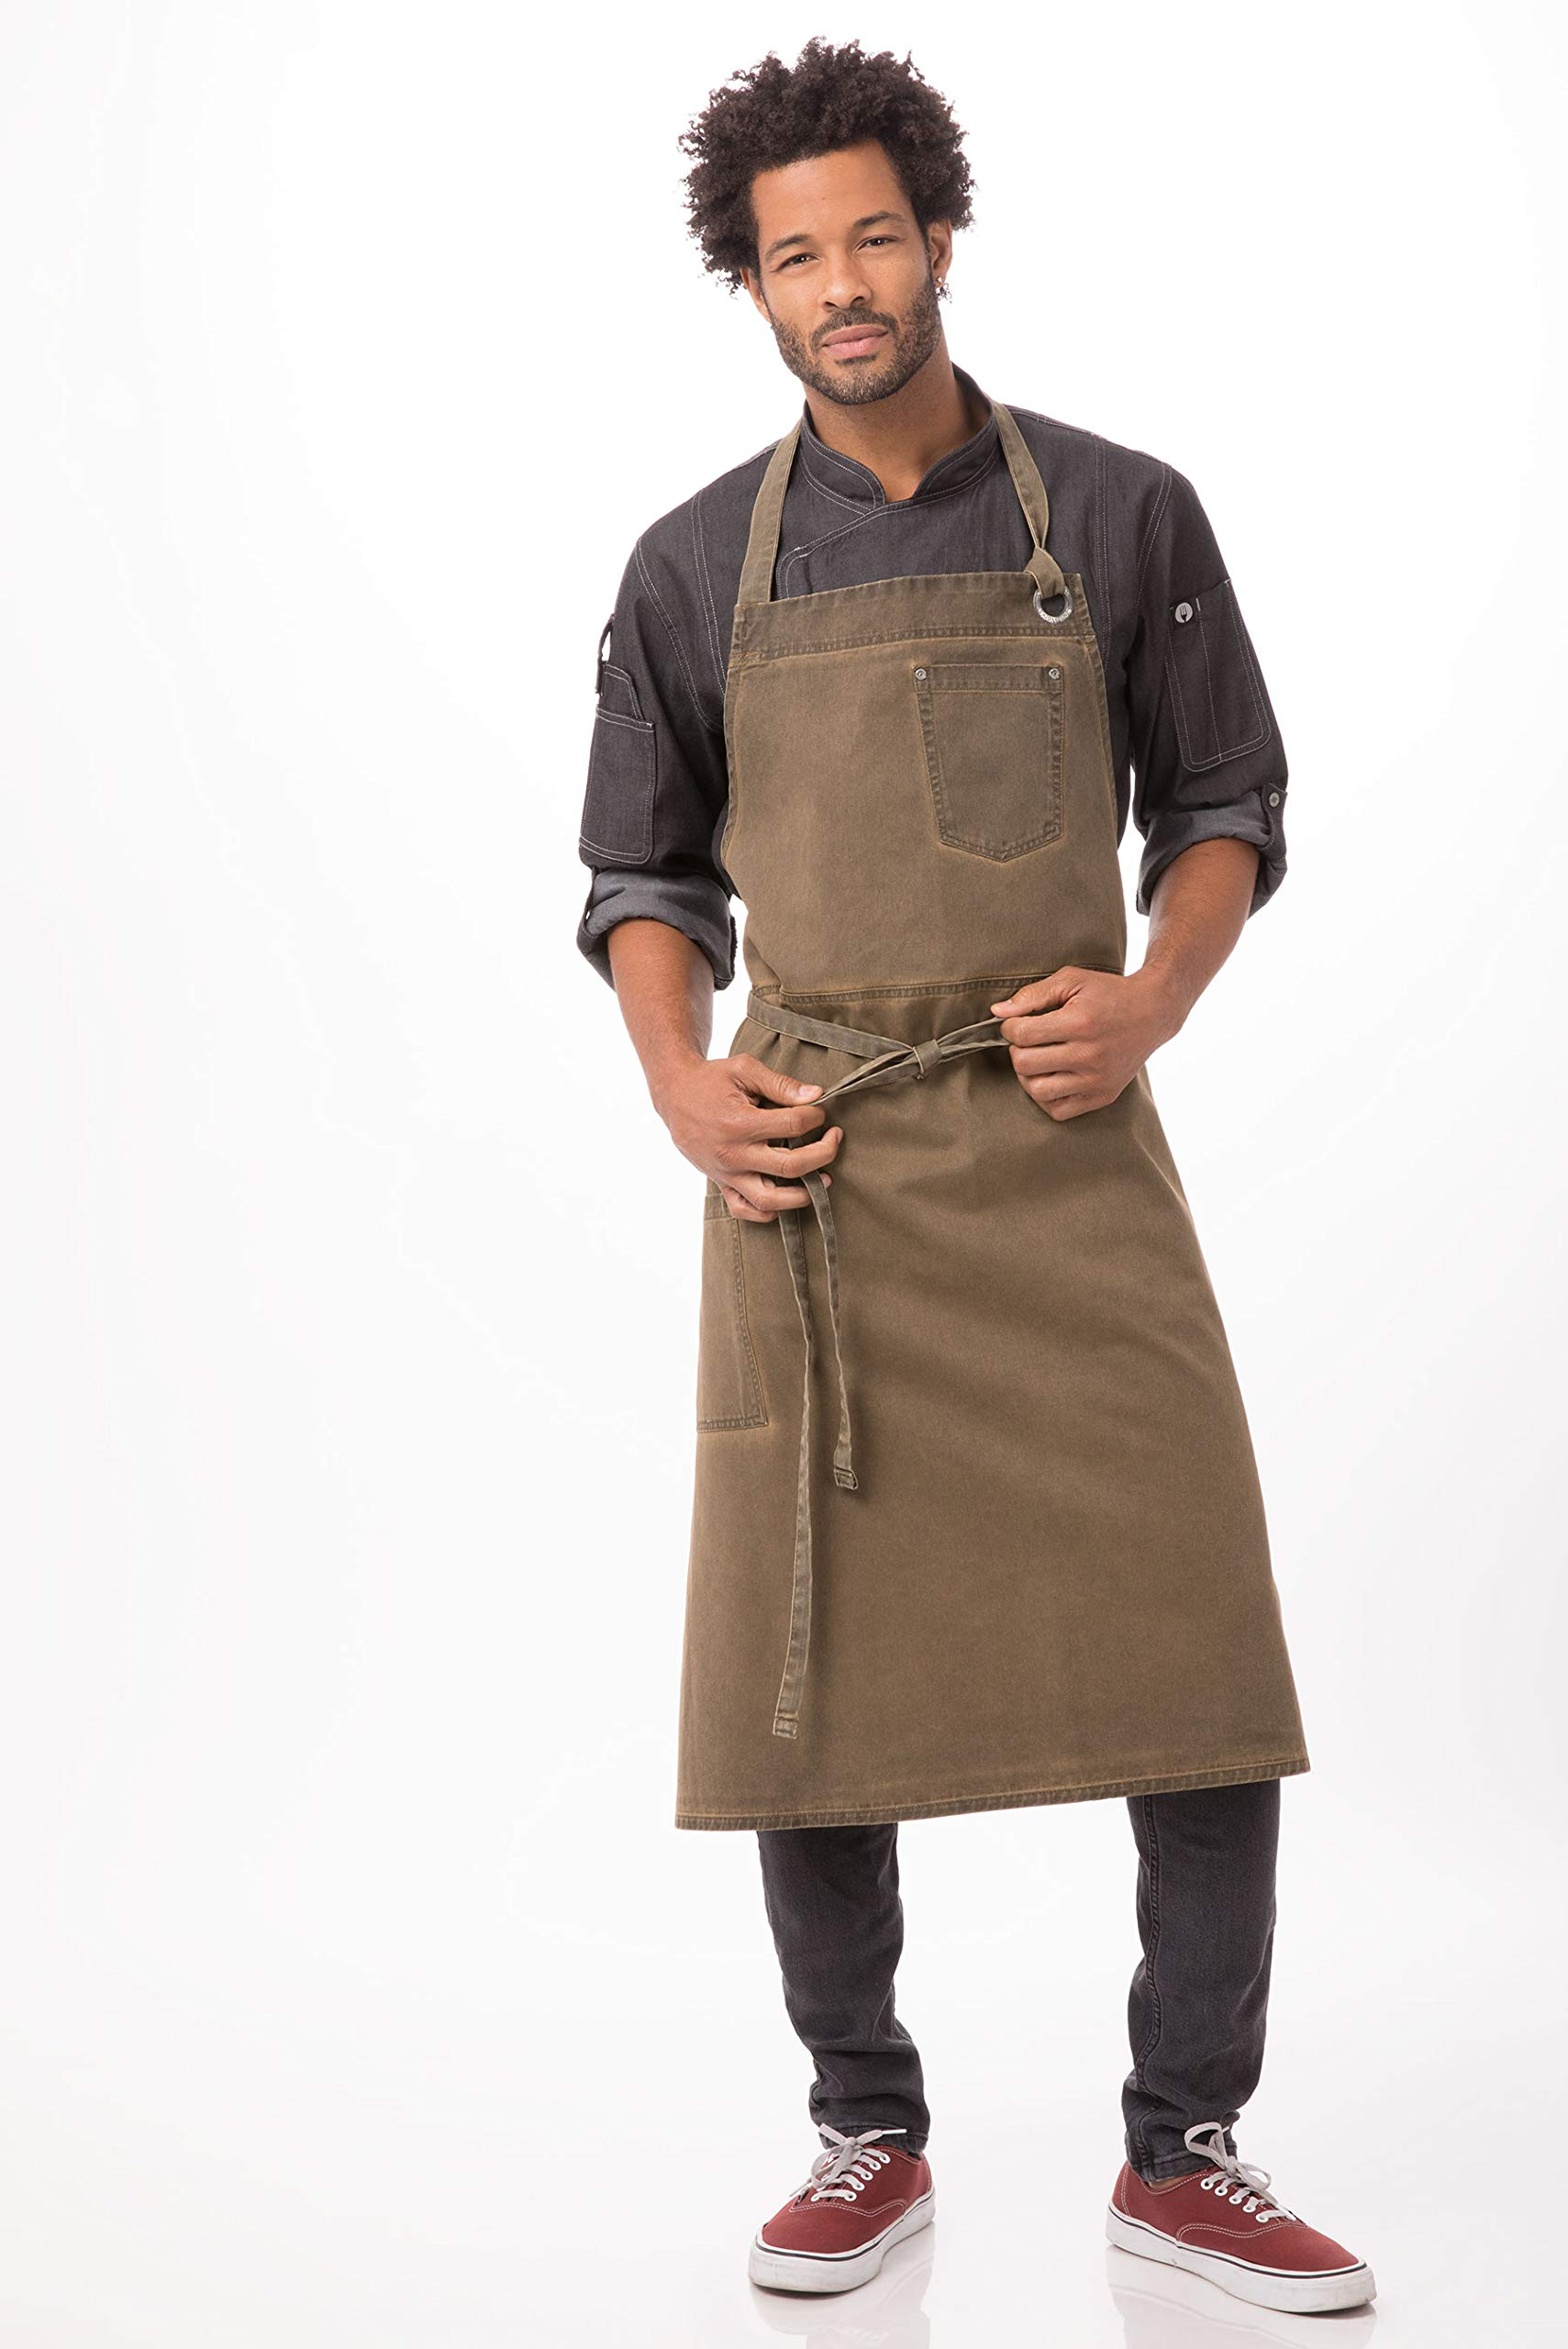 Chef Works Dorset Chefs Bib Apron, Golden Brown, One Size by Chef Works